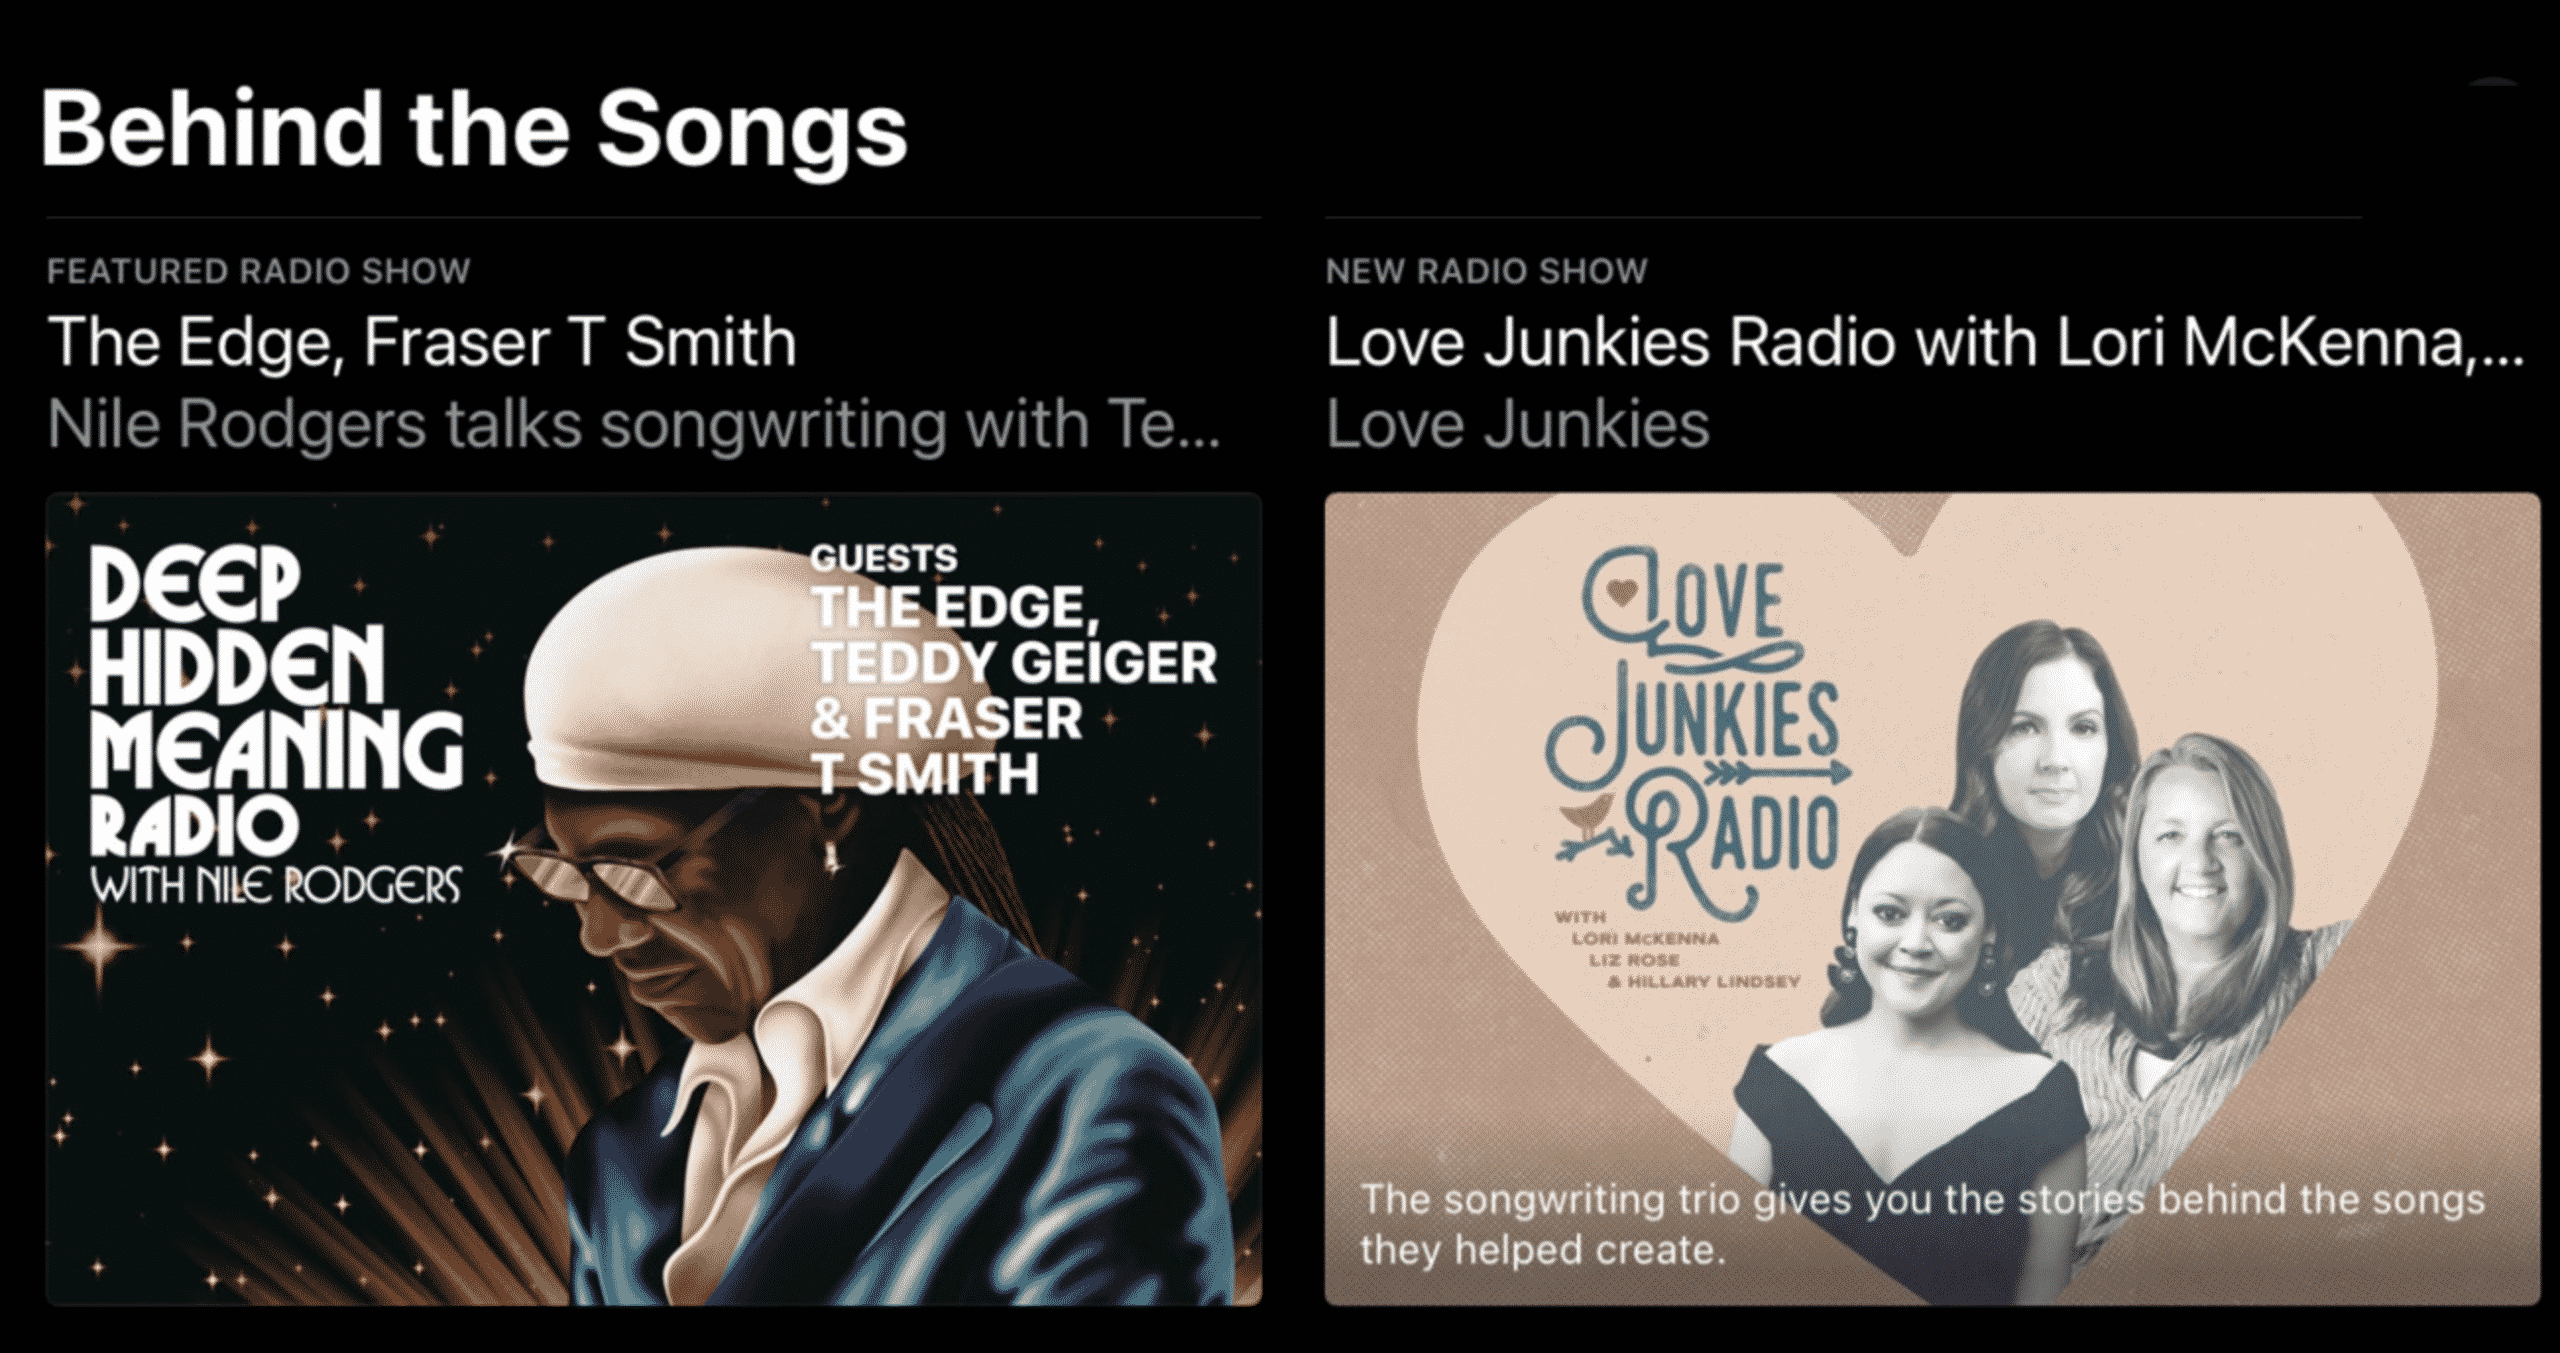 Apple Music hub has new 'Behind the Songs' feature